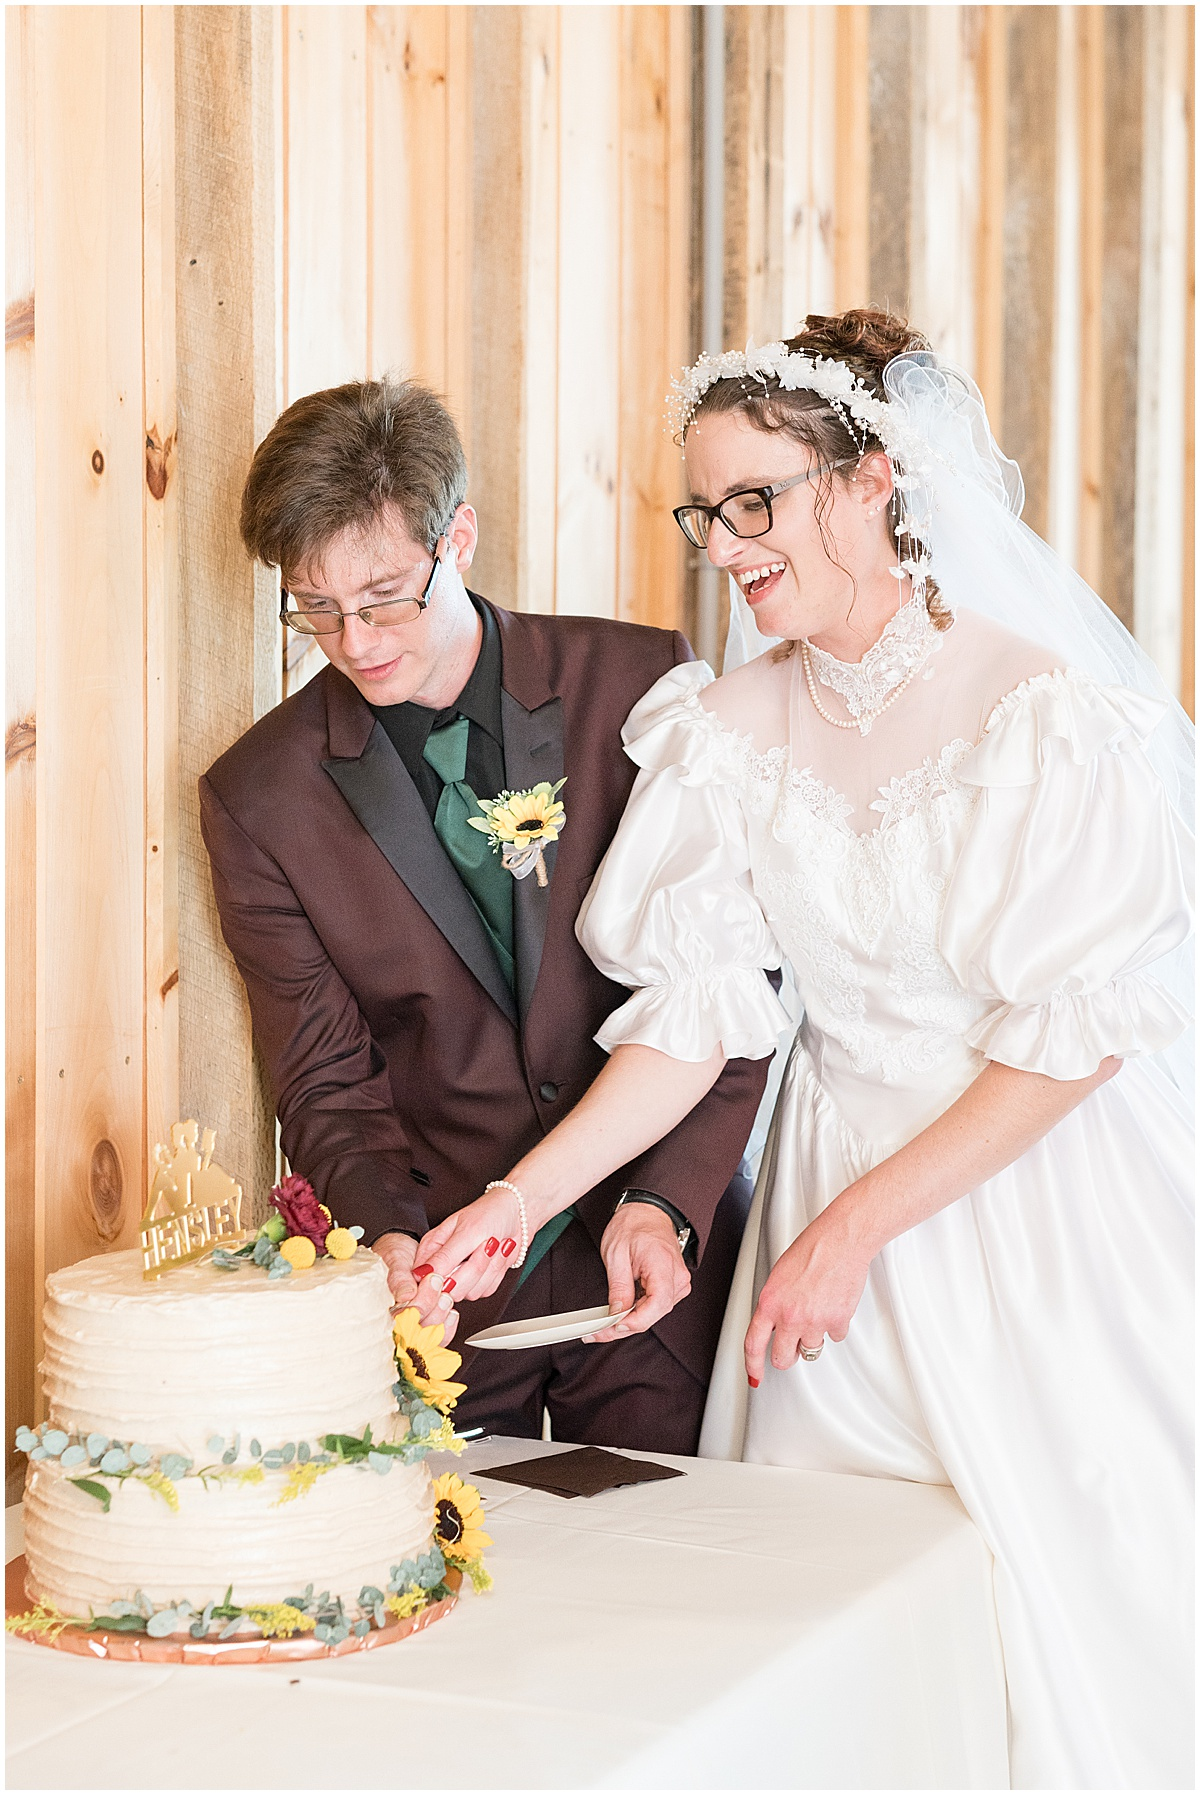 Bride and groom cutting cake at Exploration Acres wedding in Lafayette, Indiana